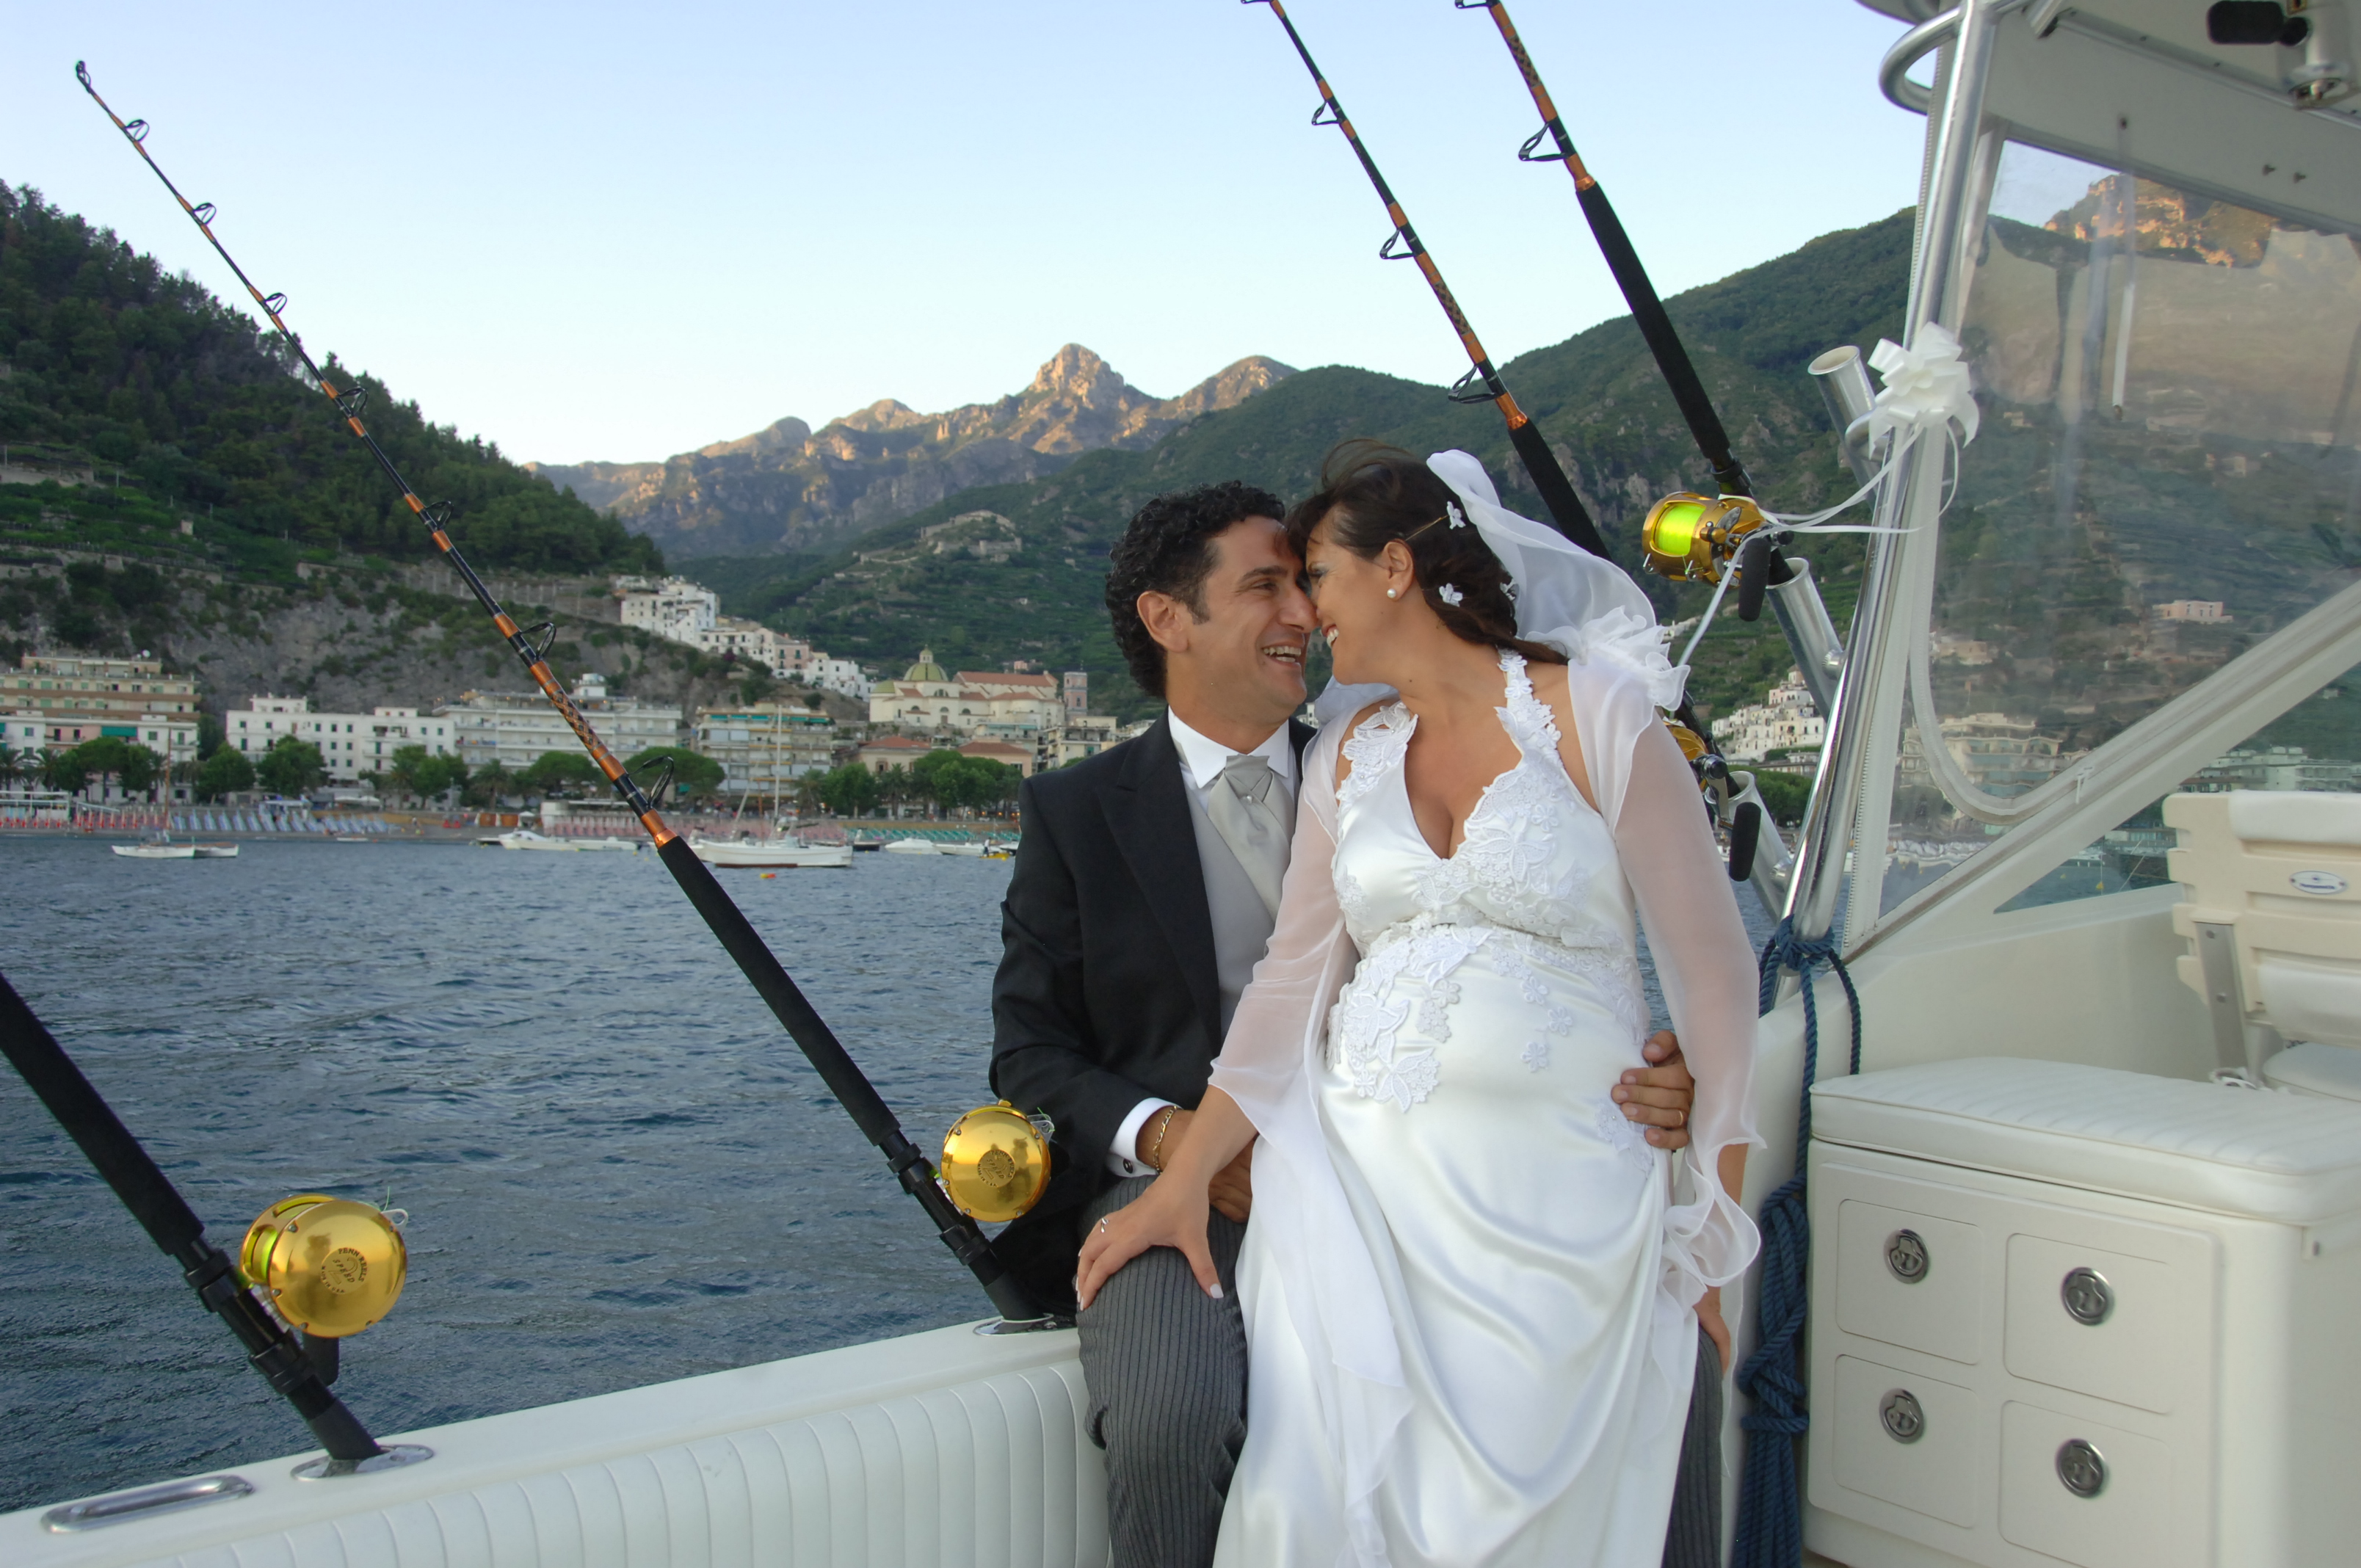 http://www.weddingamalfi.com/wp-content/uploads/Enza-and-Mario-15.jpg